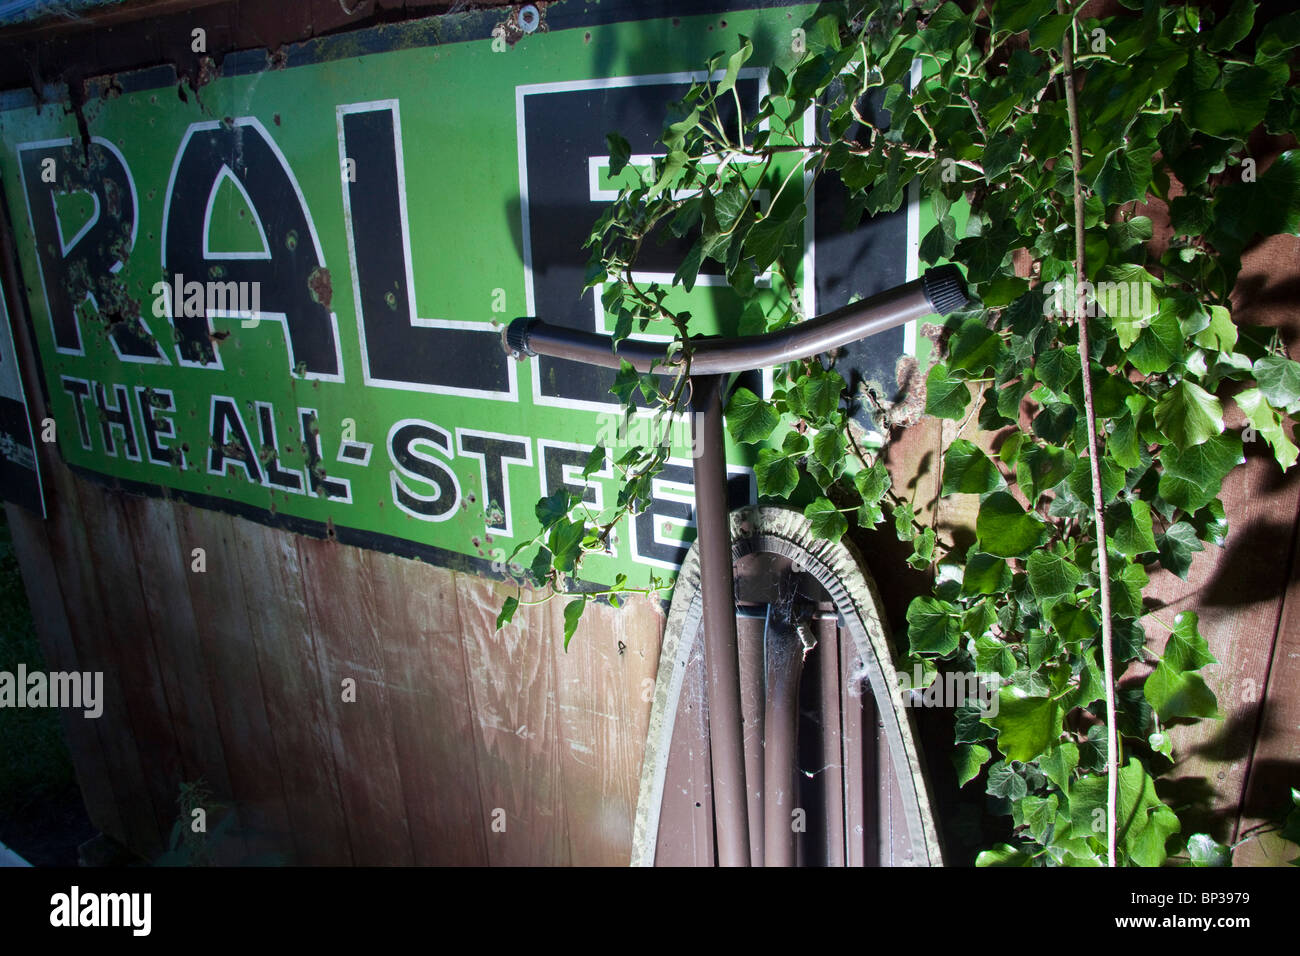 An old stove enamel advertising sign Raleigh The All-Steel Bicycle overgrown by ivy and under lit - Stock Image